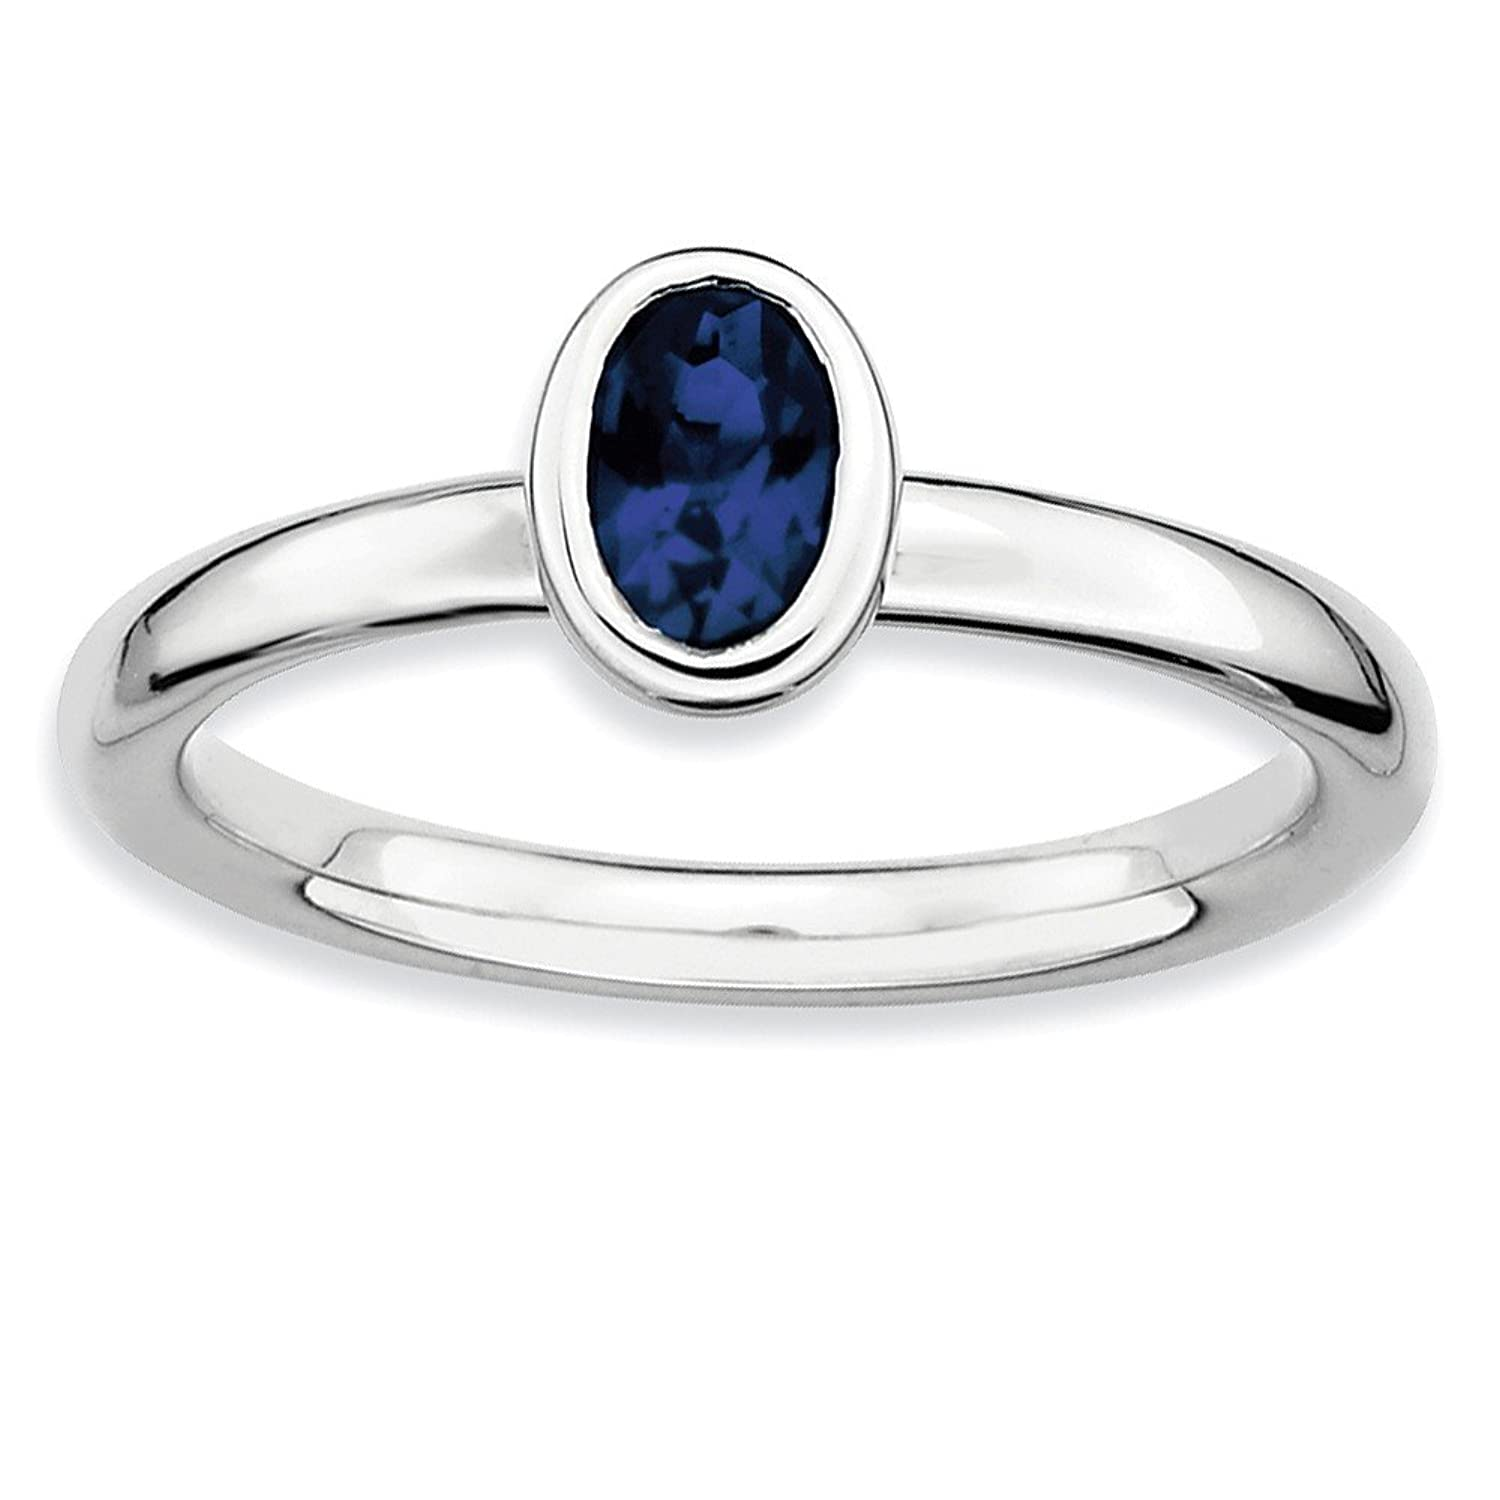 Roy Rose Jewelry Sterling Silver Stackable Expressions Oval Created Sapphire Ring